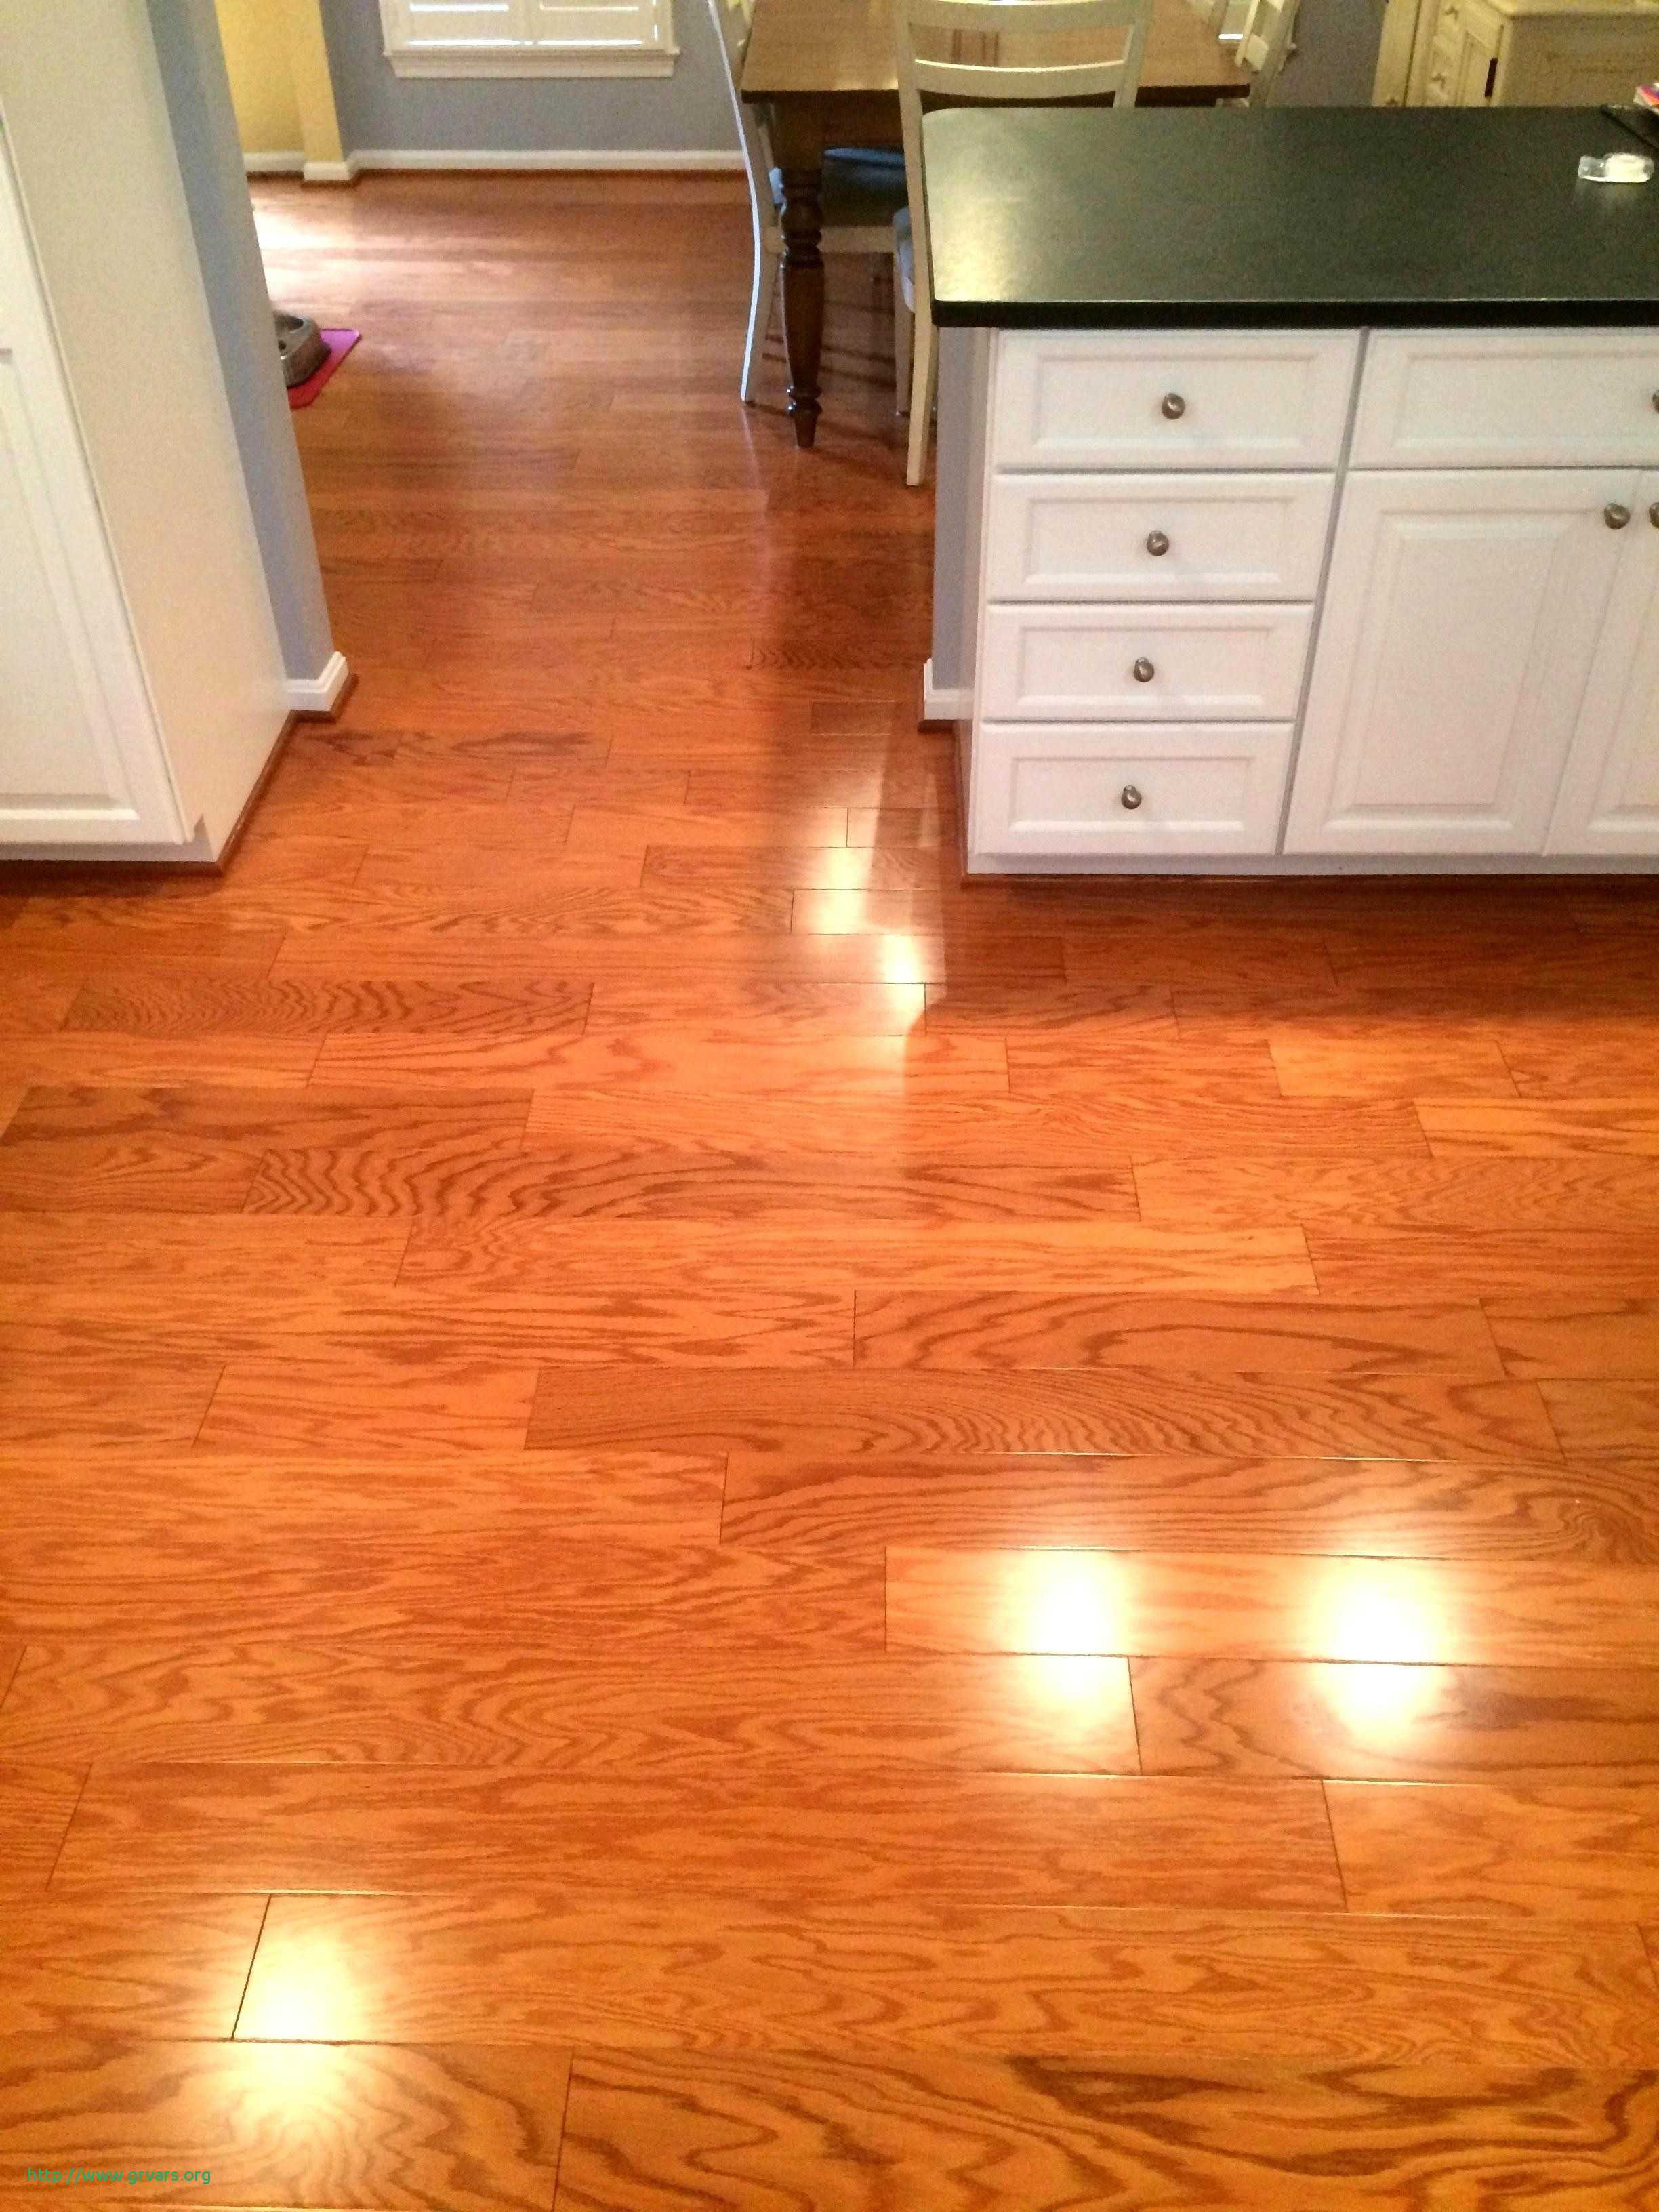 water based hardwood floor finish of 17 a‰lagant concrete floor wax products ideas blog within concrete floor wax products meilleur de hardwood flooring deals hard wearing wood floor finish floor plan